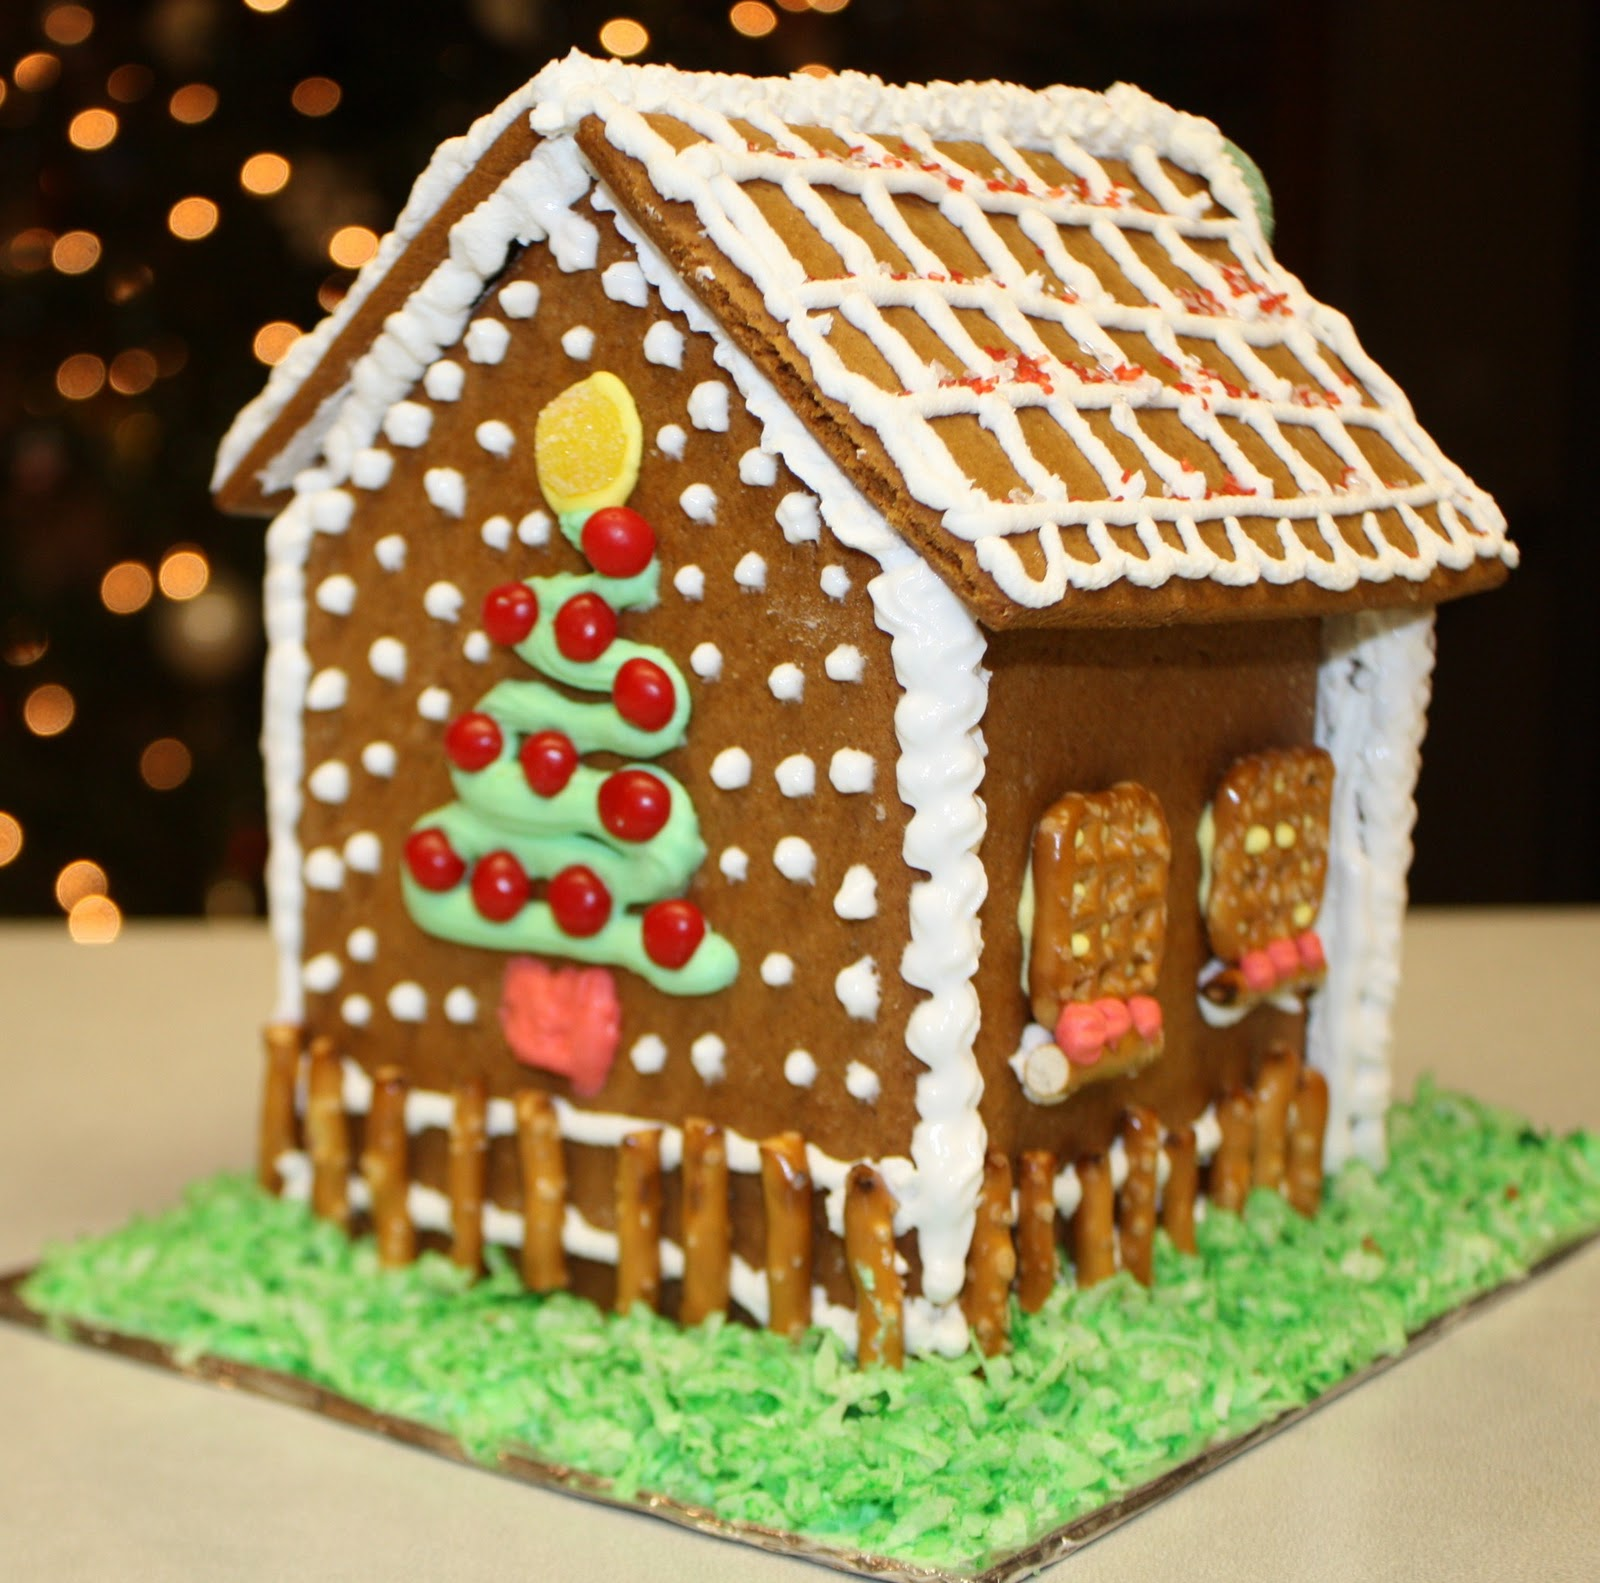 Everyday Cookies: Look At What We Built! Gingerbread Houses